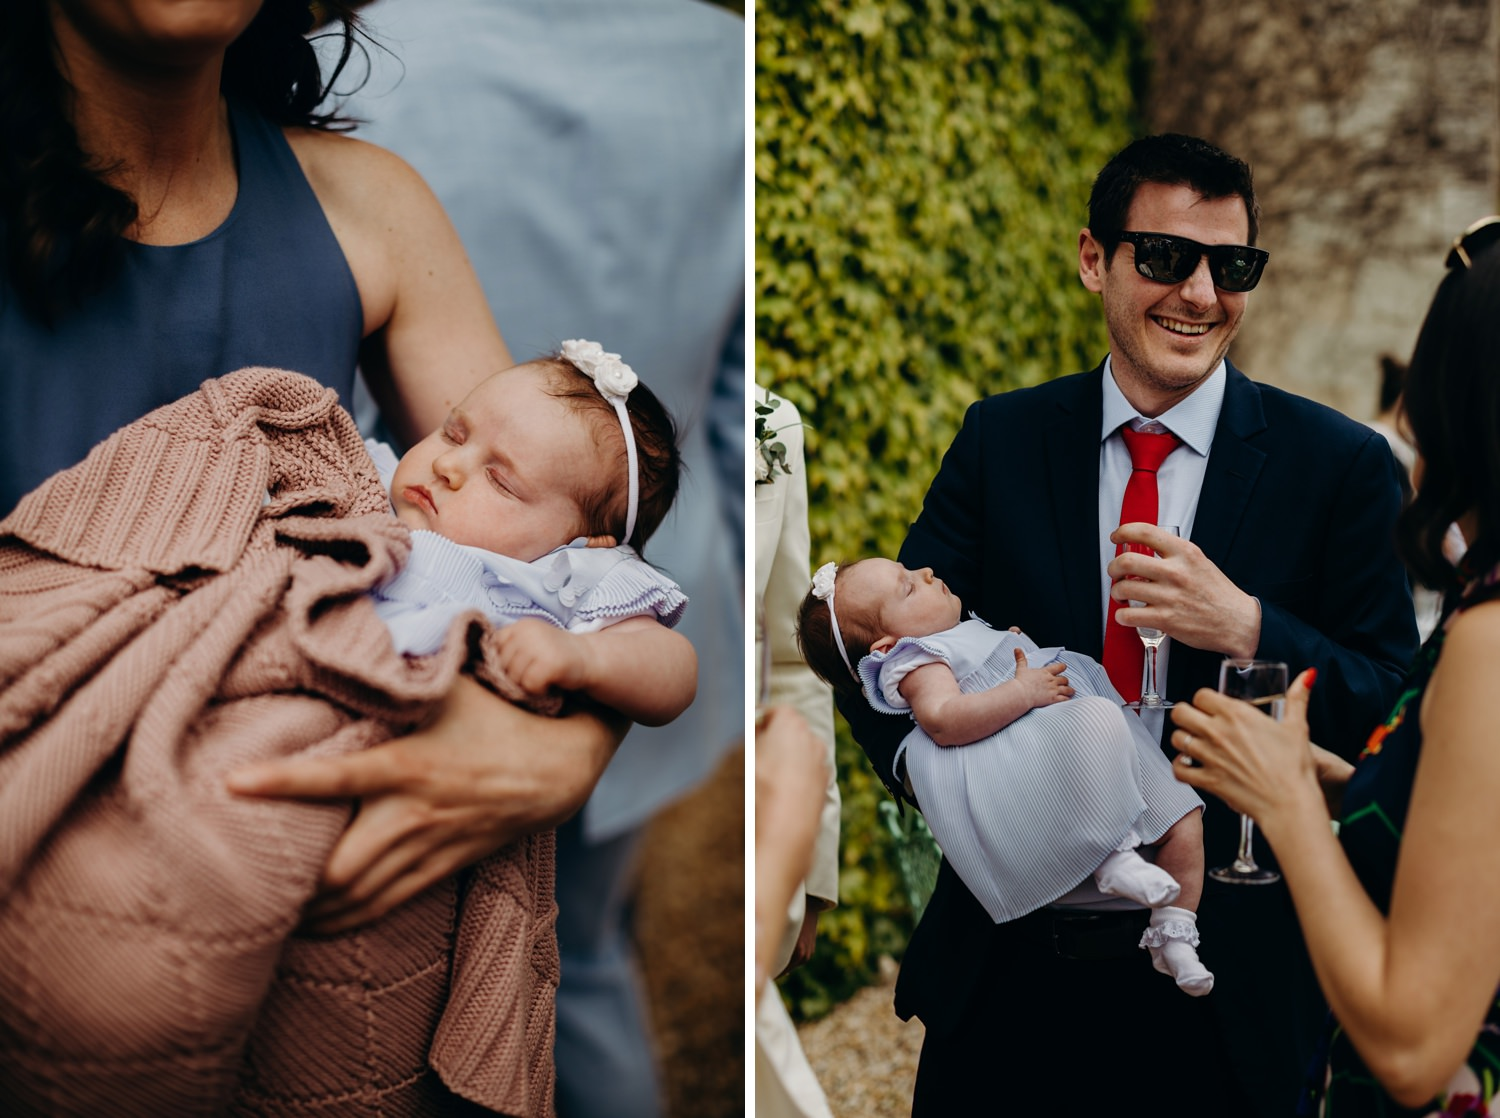 baby sleeps at wedding